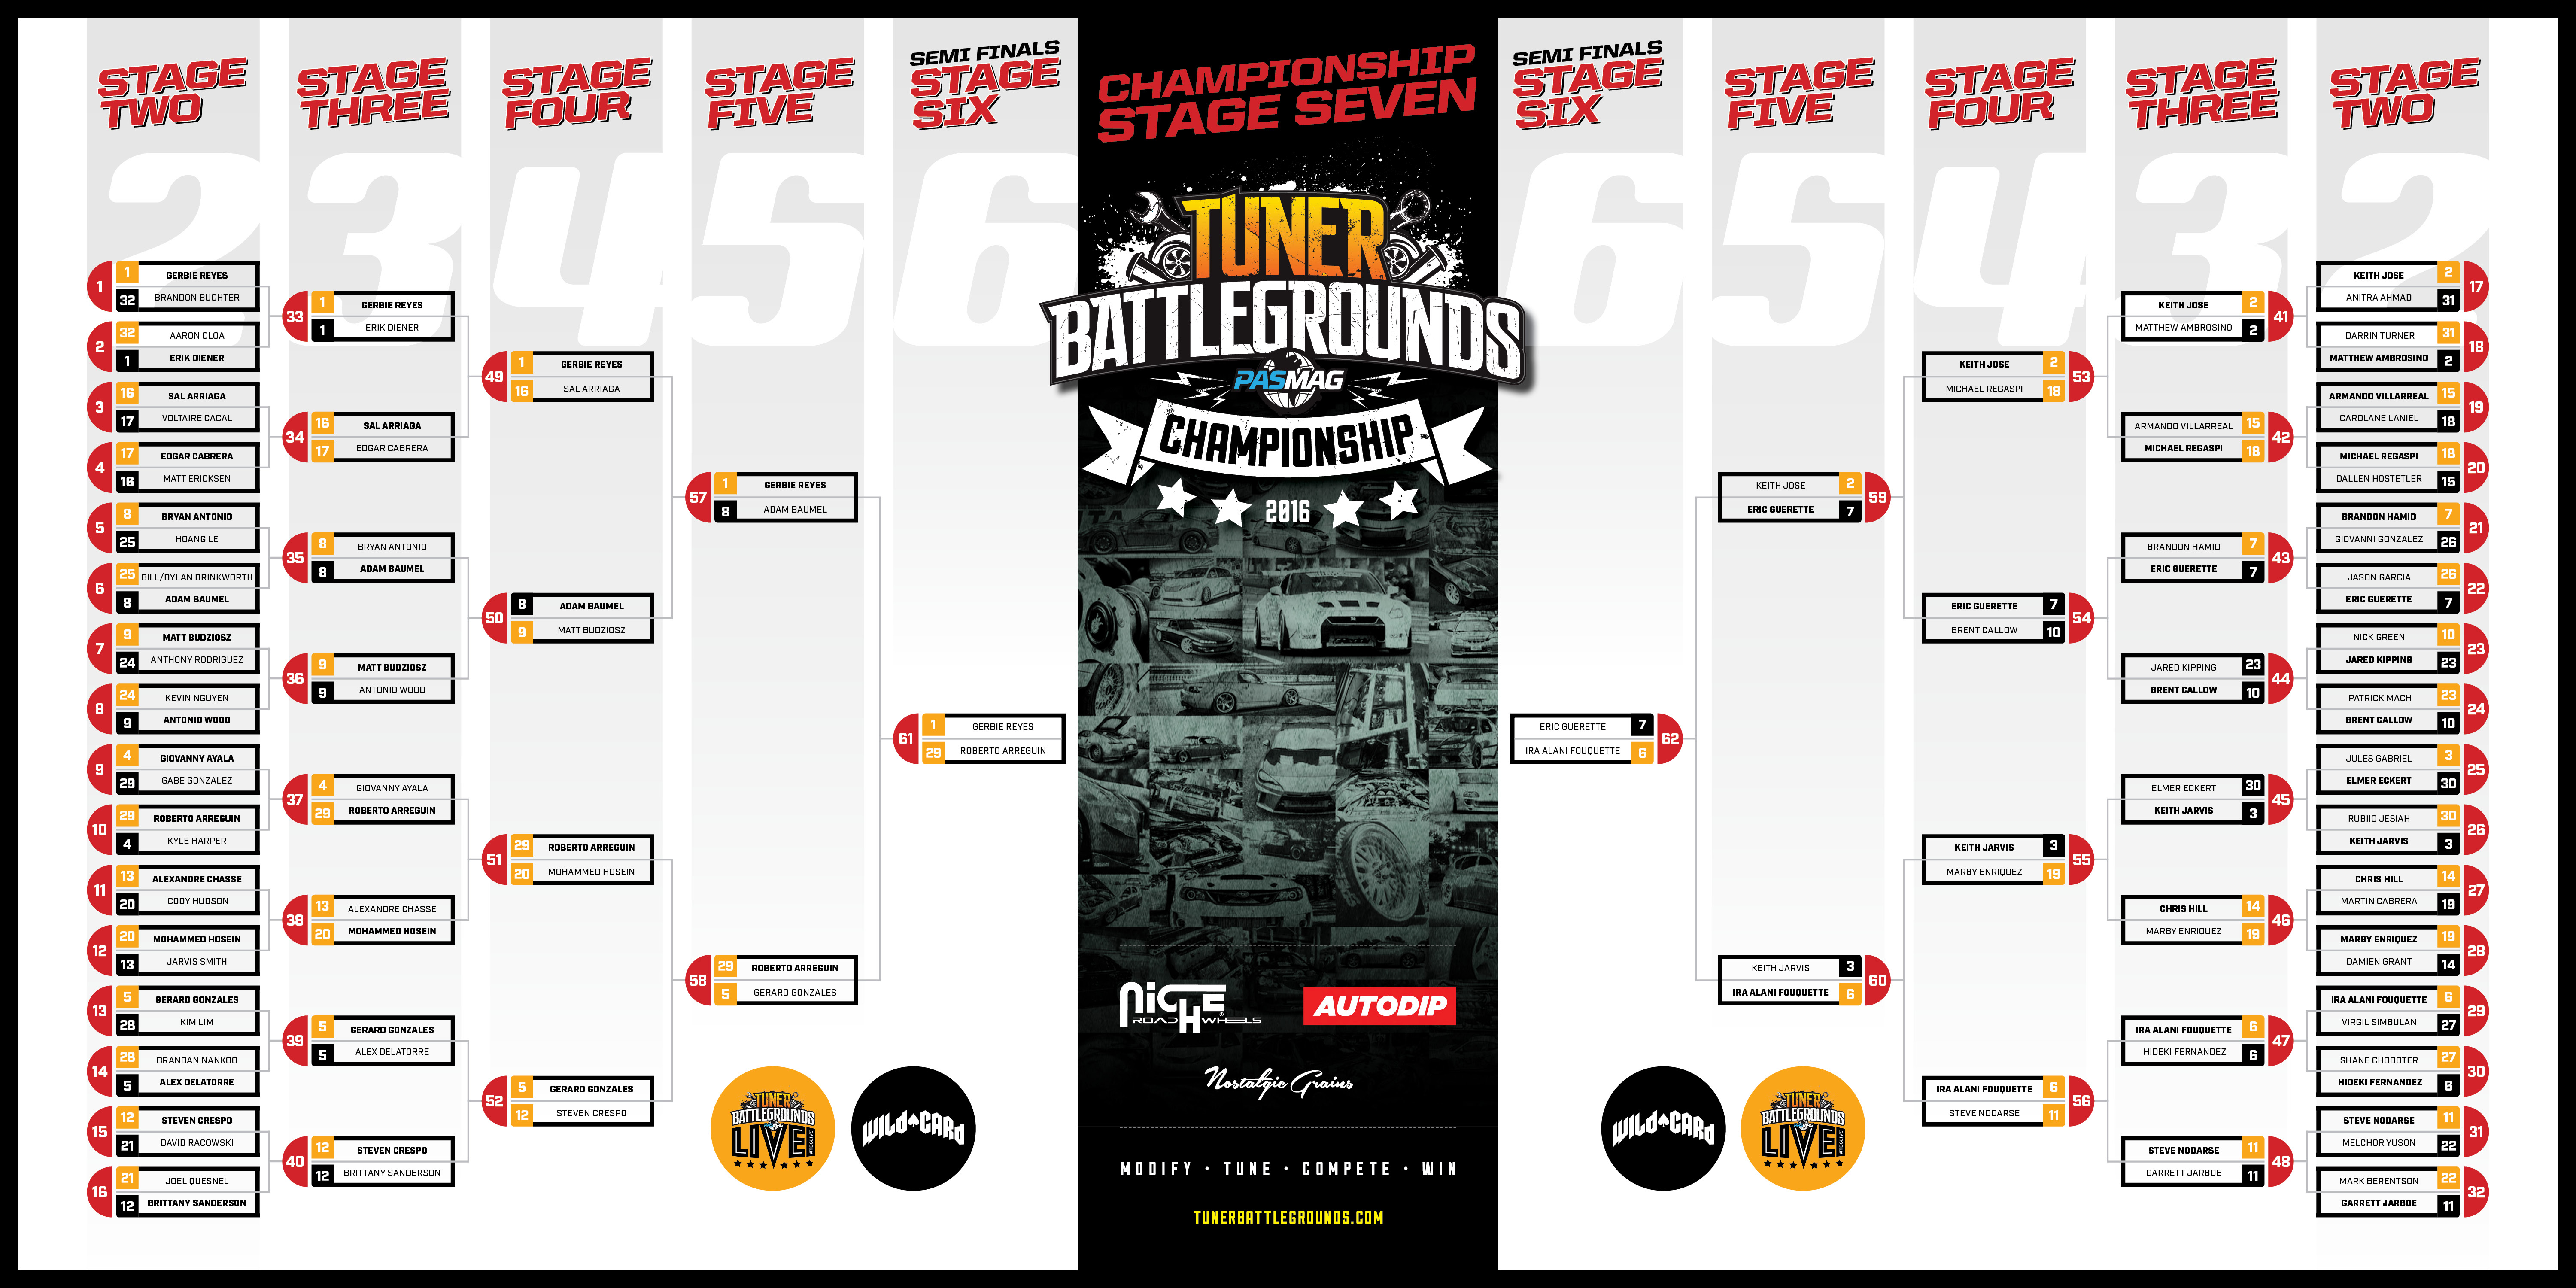 2016 Tuner Battlegrounds Championship Bracket Stage 6